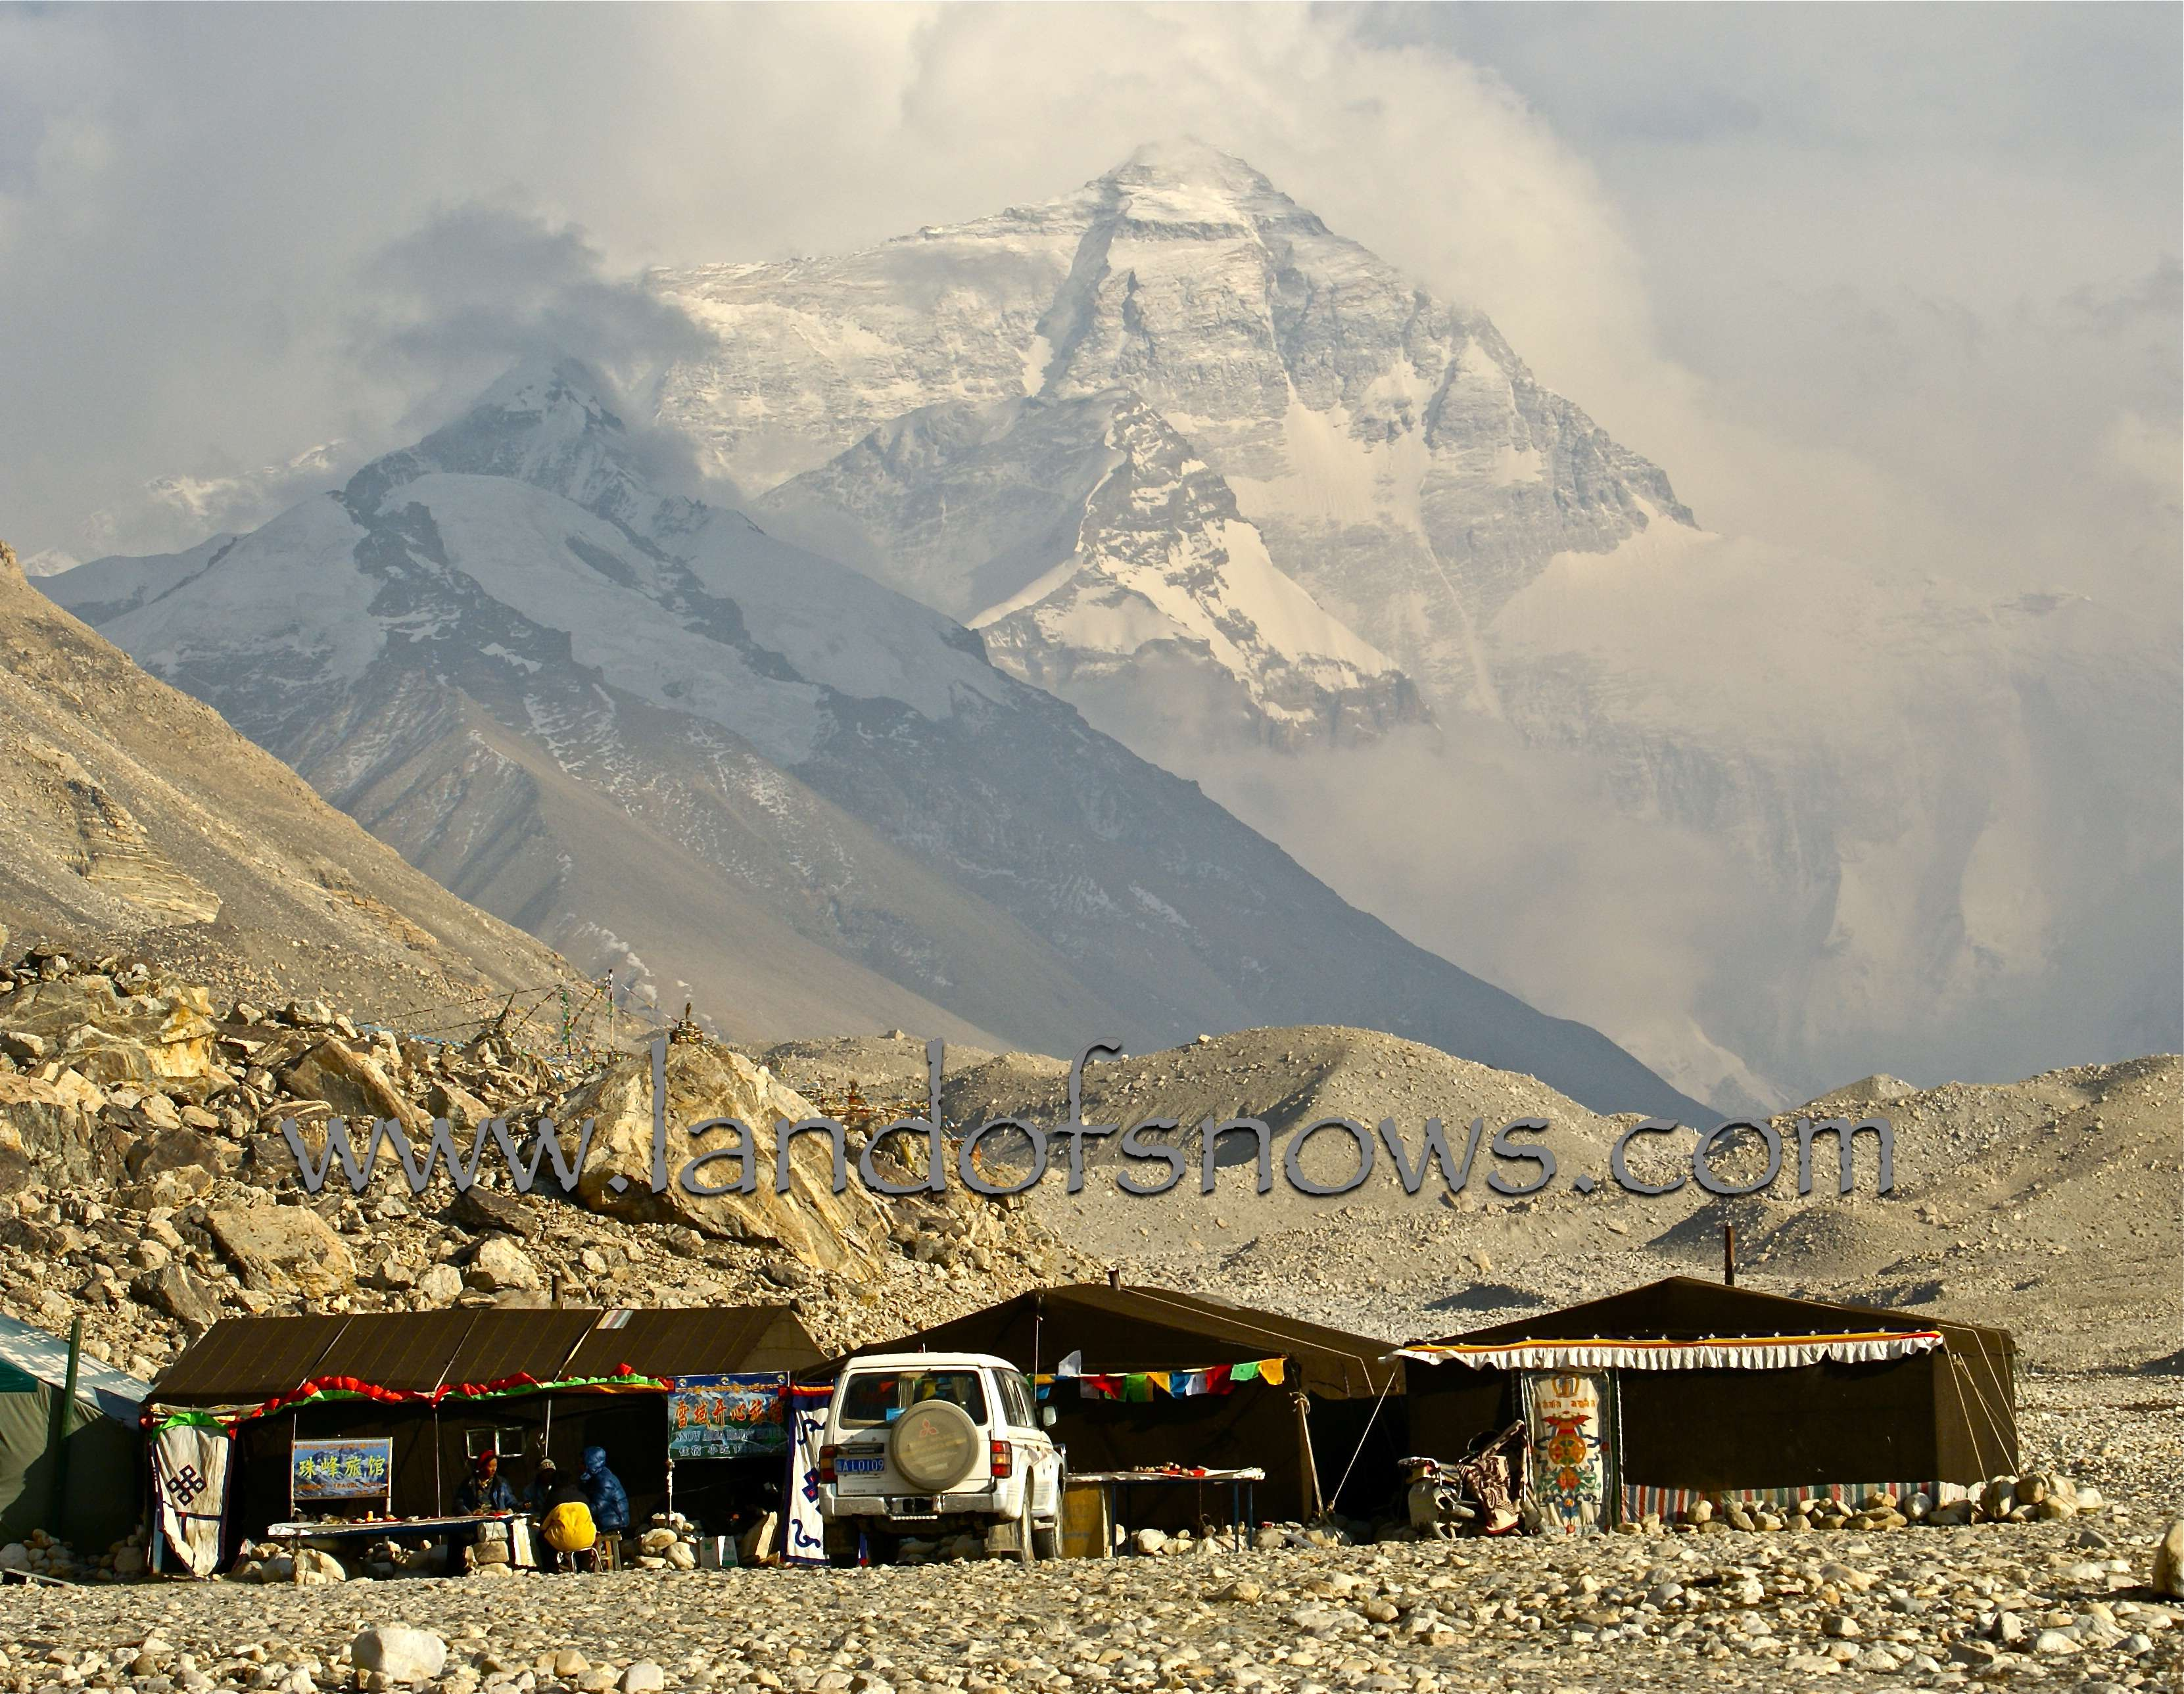 The tent hotels near Everest Base C& are a great place to stay with an excellent view of the mountain. The tent hotels are located about 5kms past Rongbhu ... & Tent Hotels at Everest Base Camp - The Land of Snows